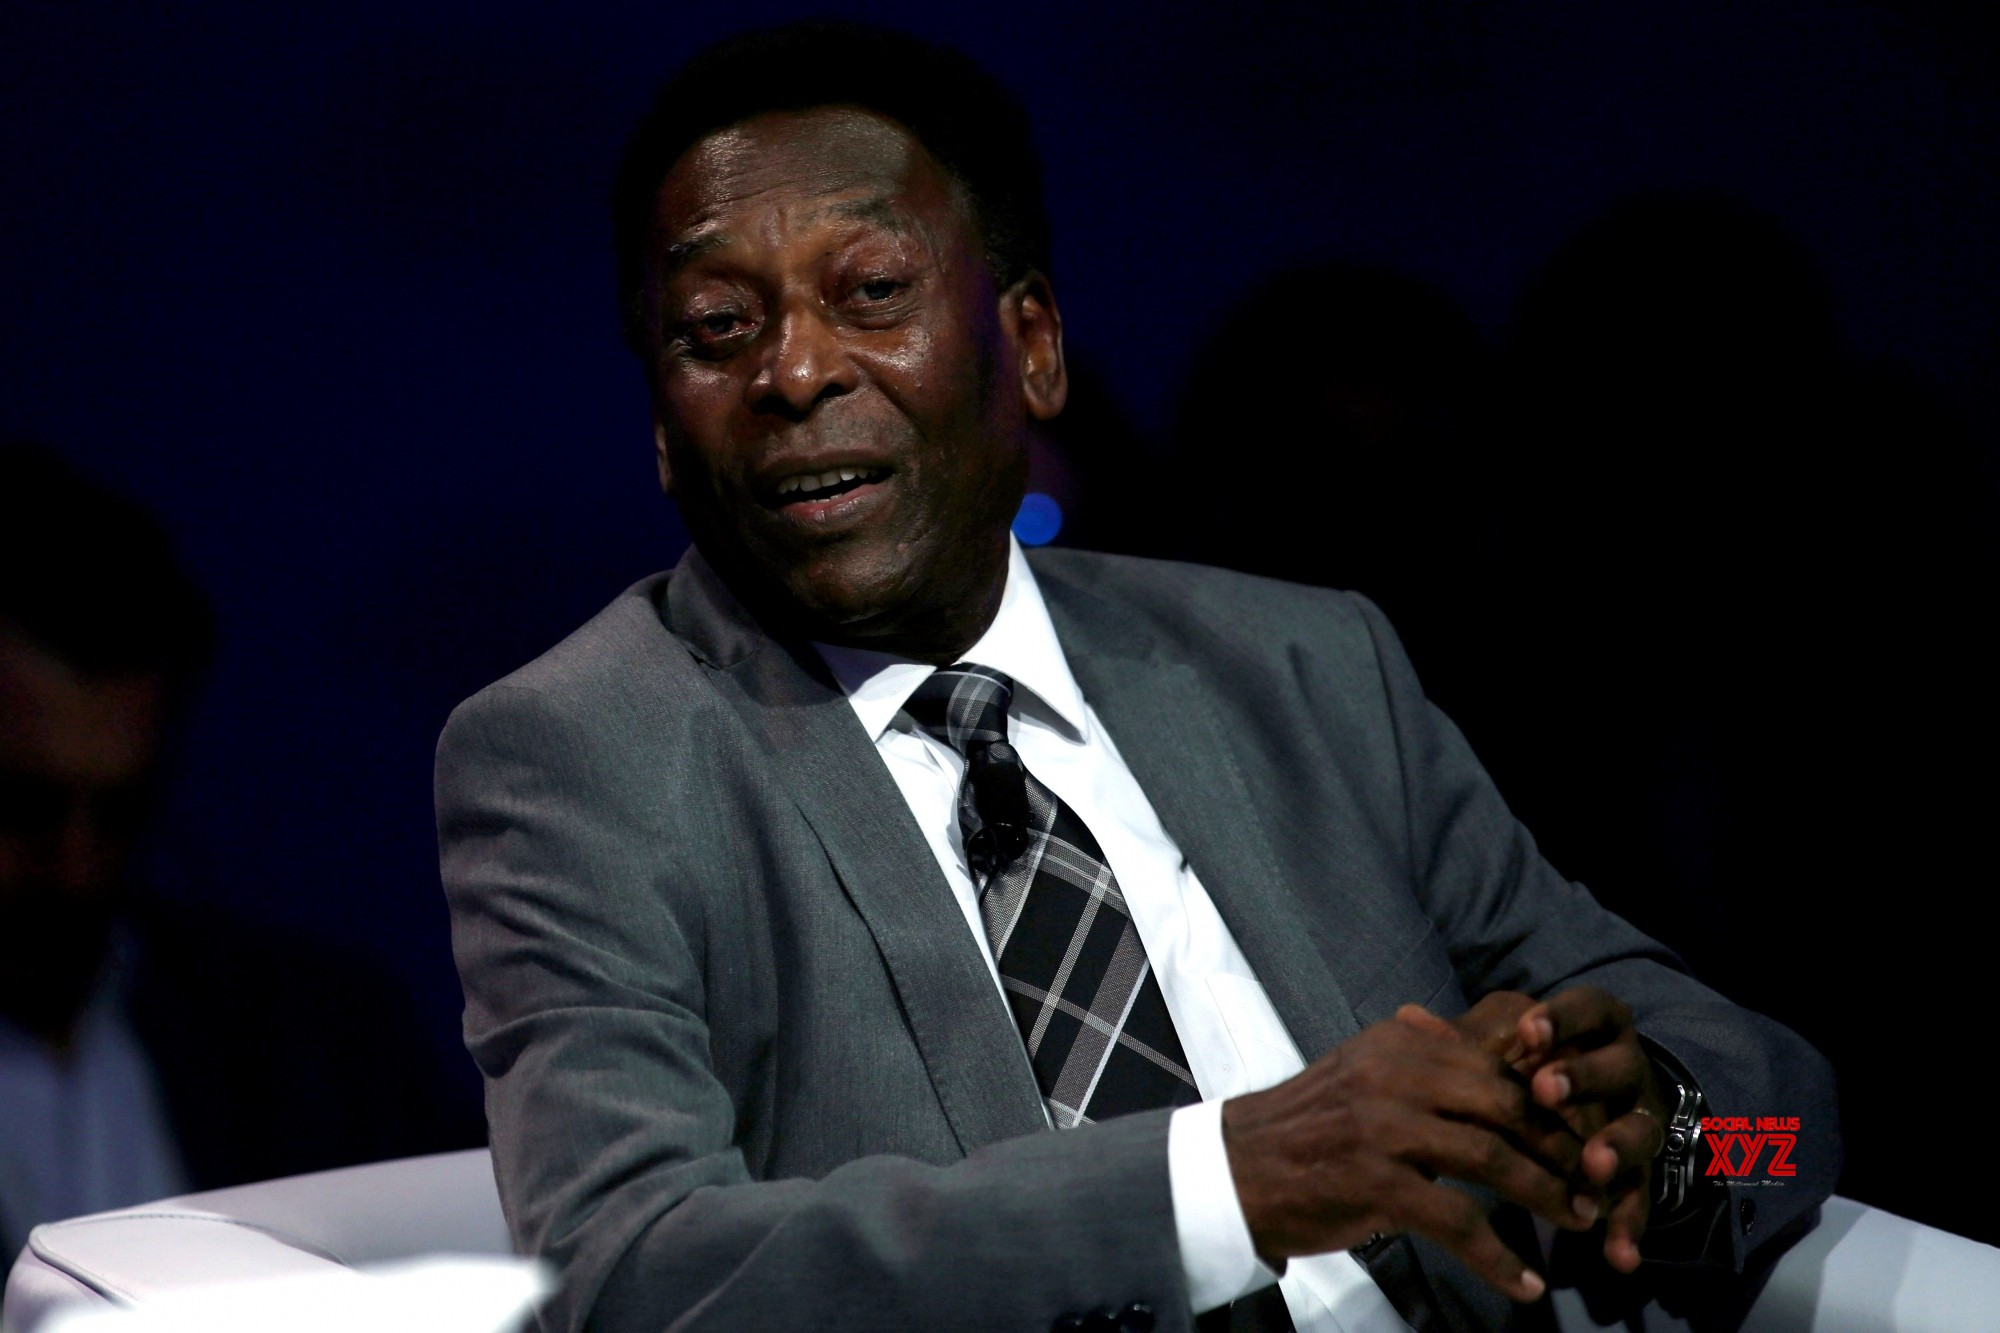 Pele 'thirsty' for life after hospital release